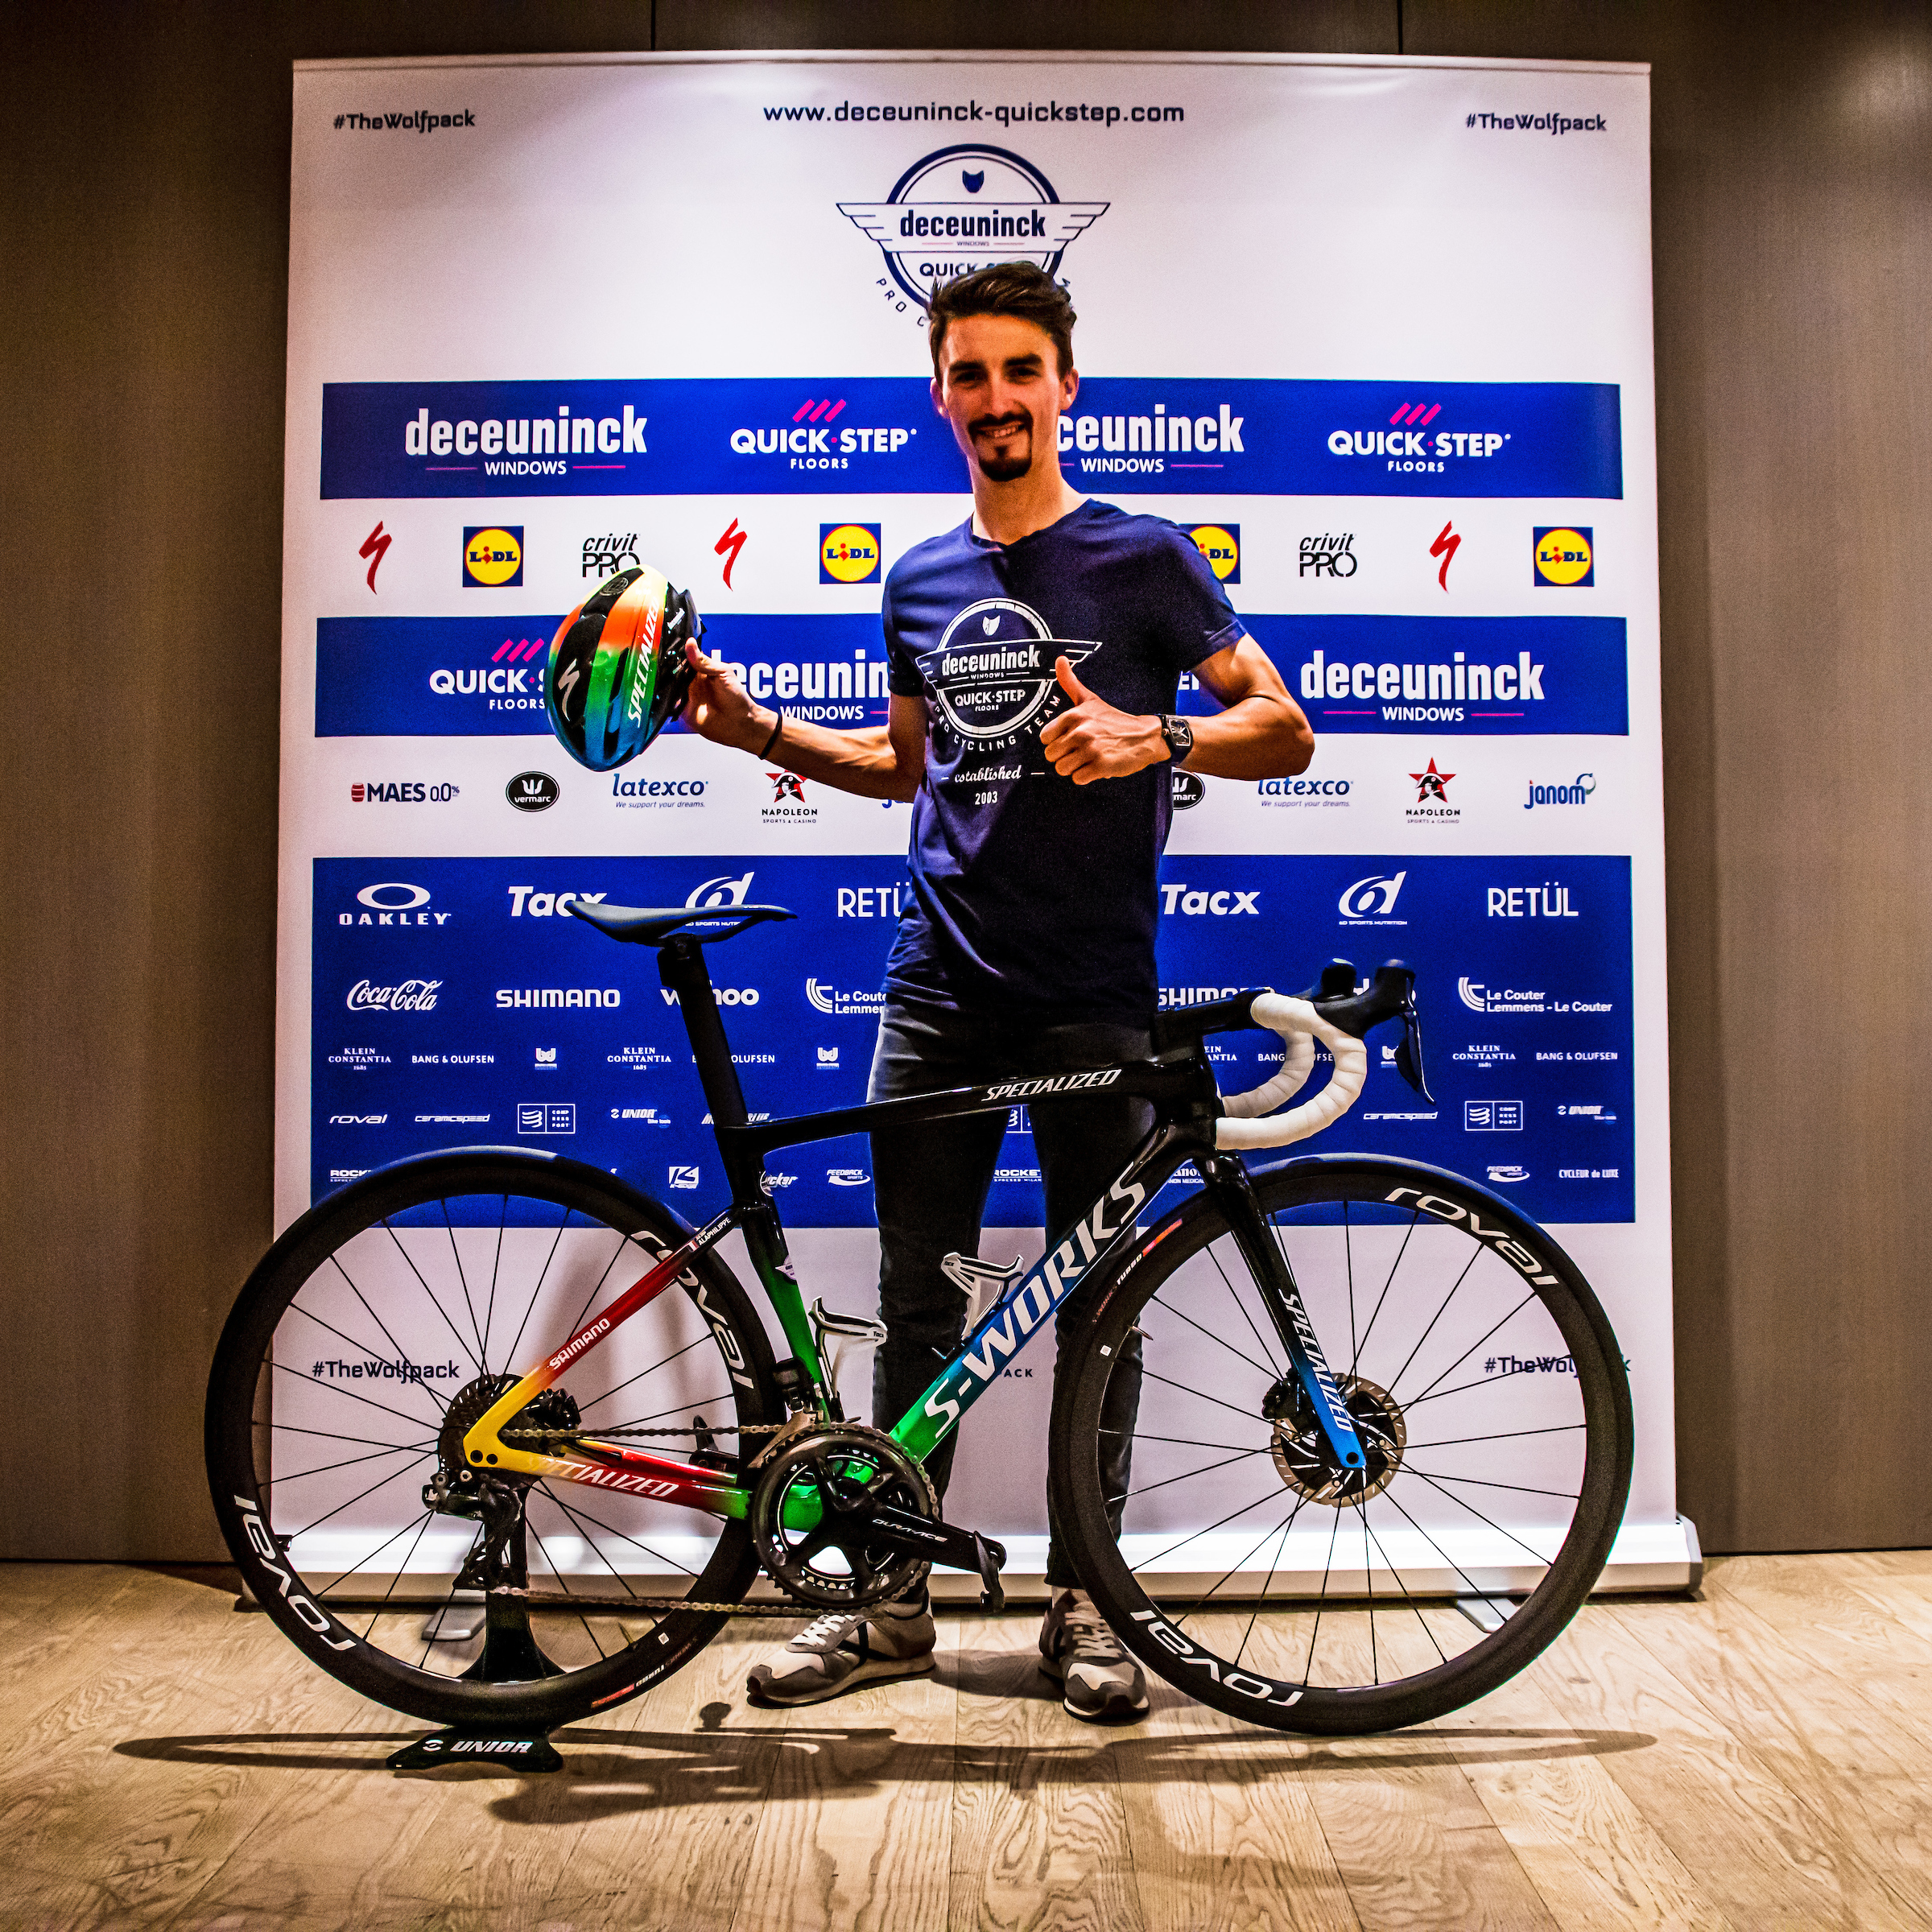 Everyone loves New Bike Day, especially World Champion Julian Alaphilippe. Photo by Wout Beel/Deceuninck - Quick-Step